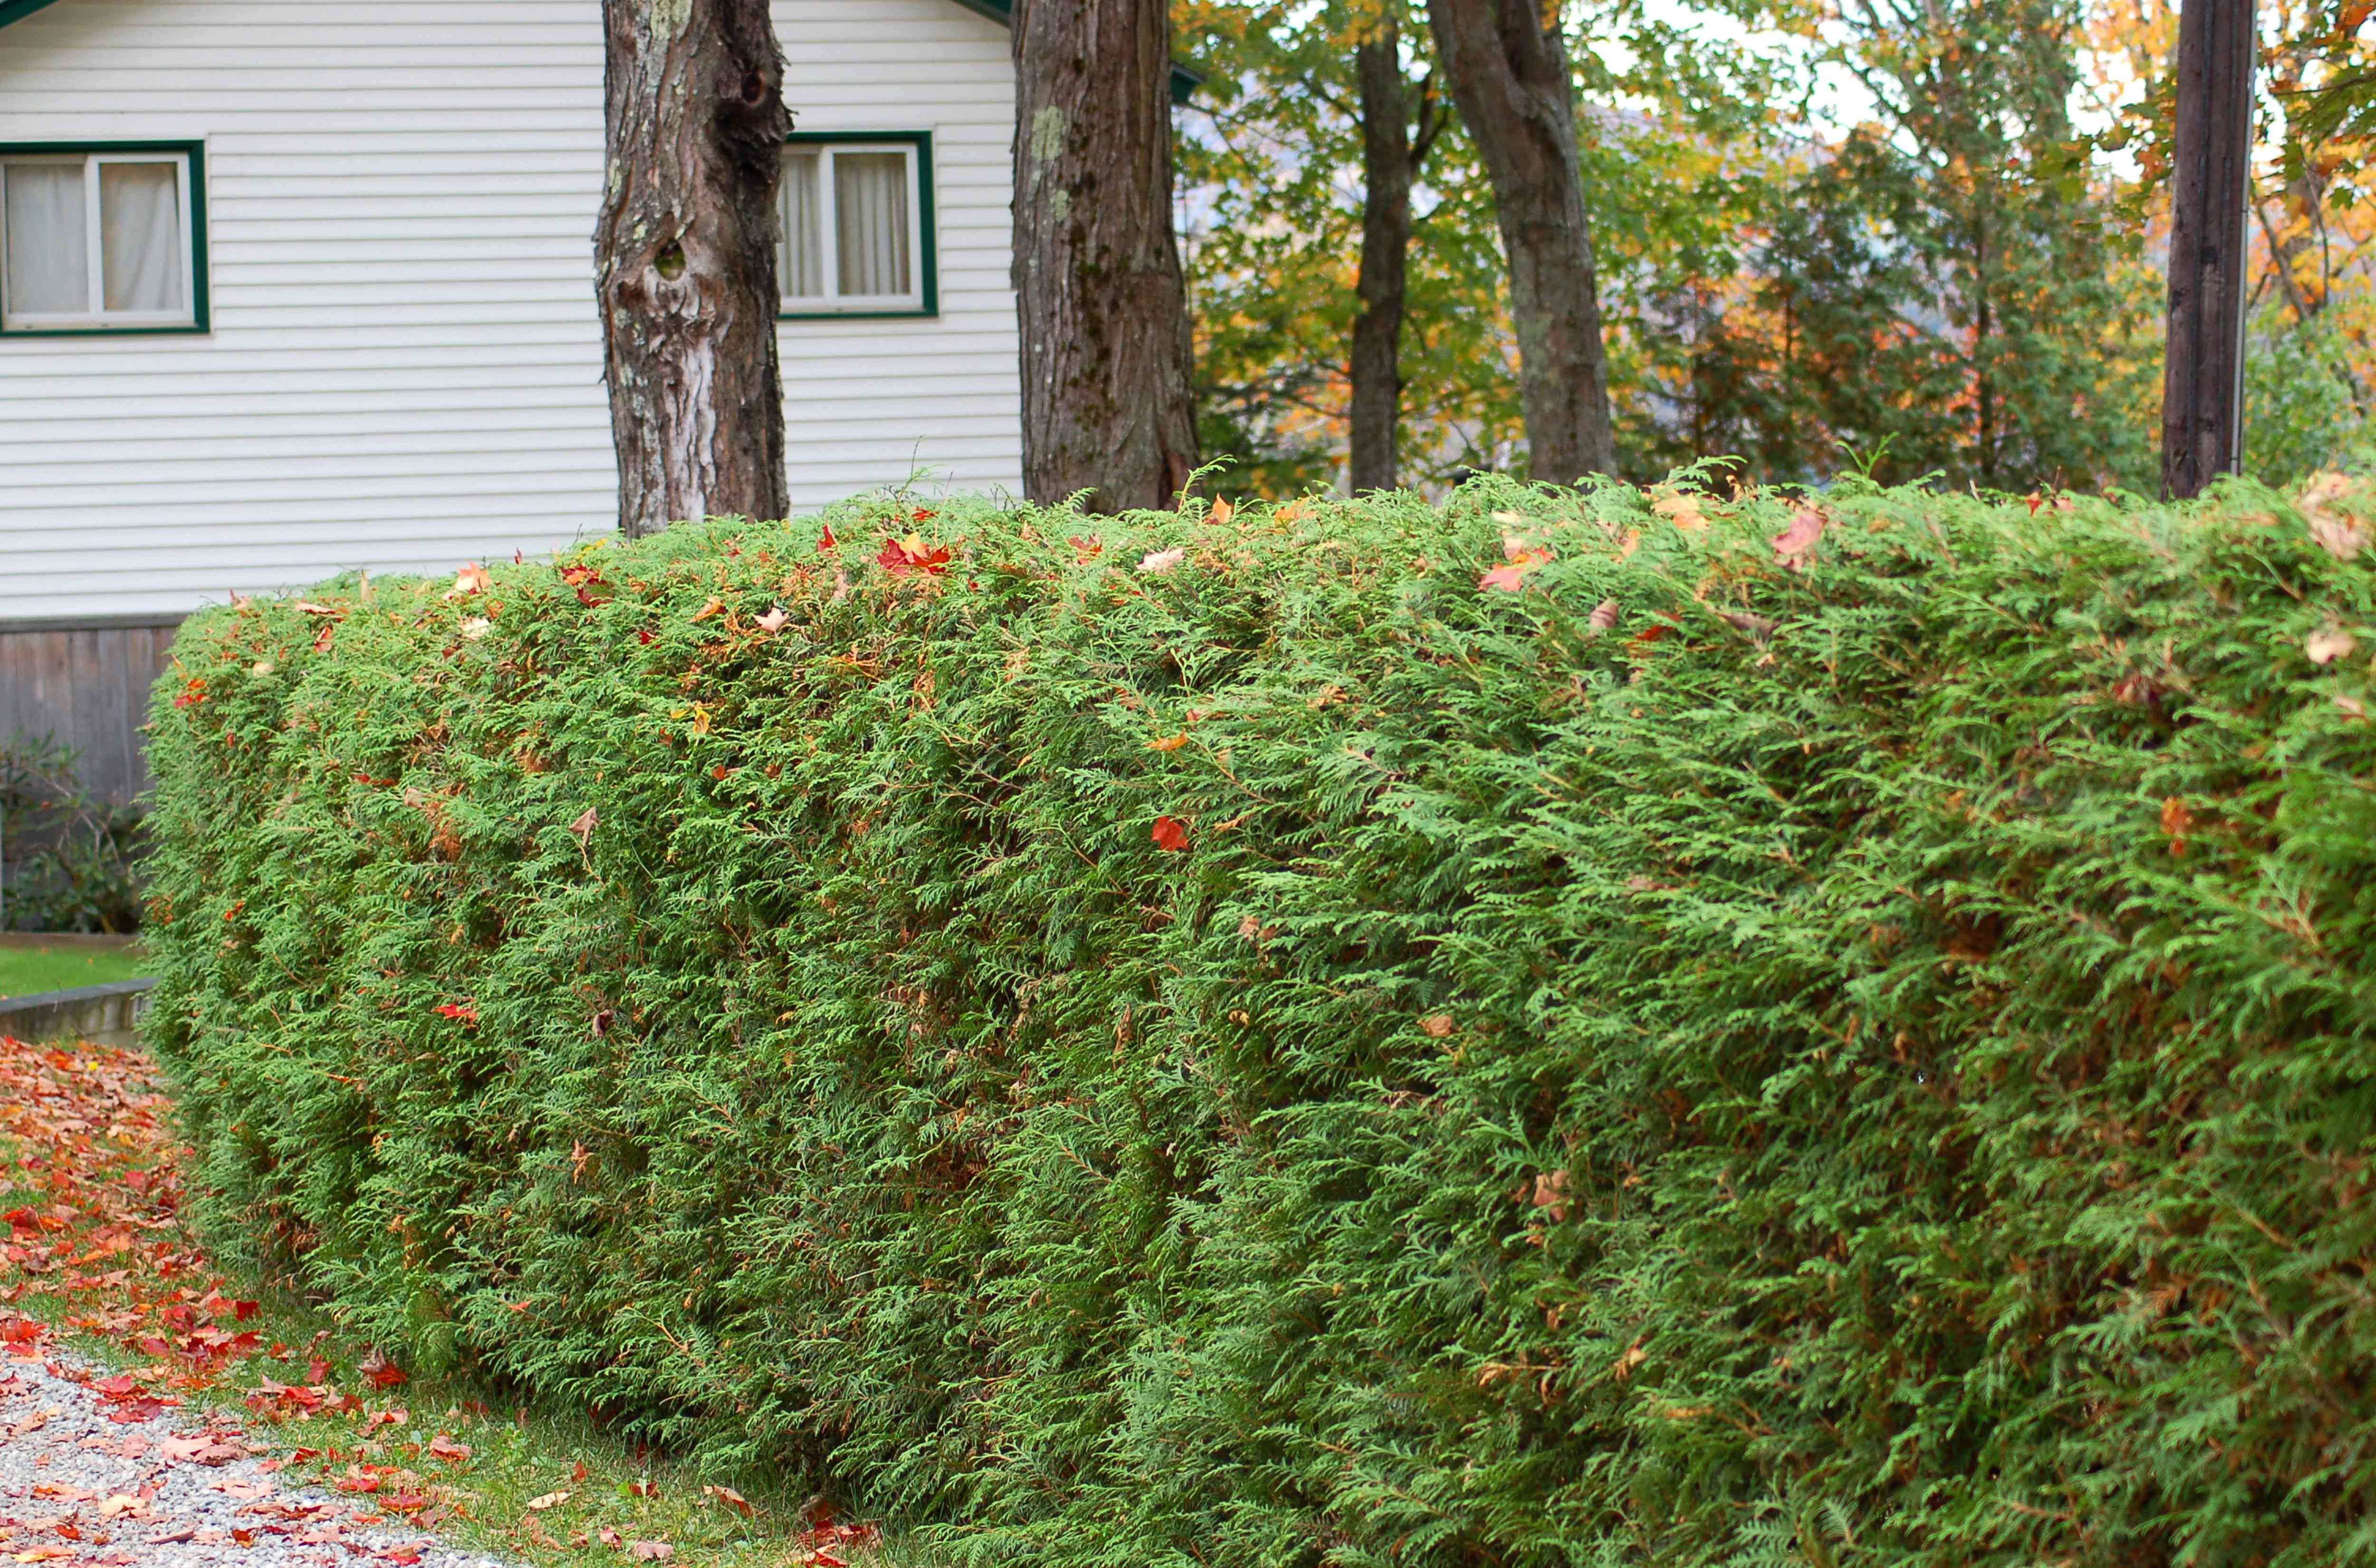 Evergreen shrub trimmed by white house